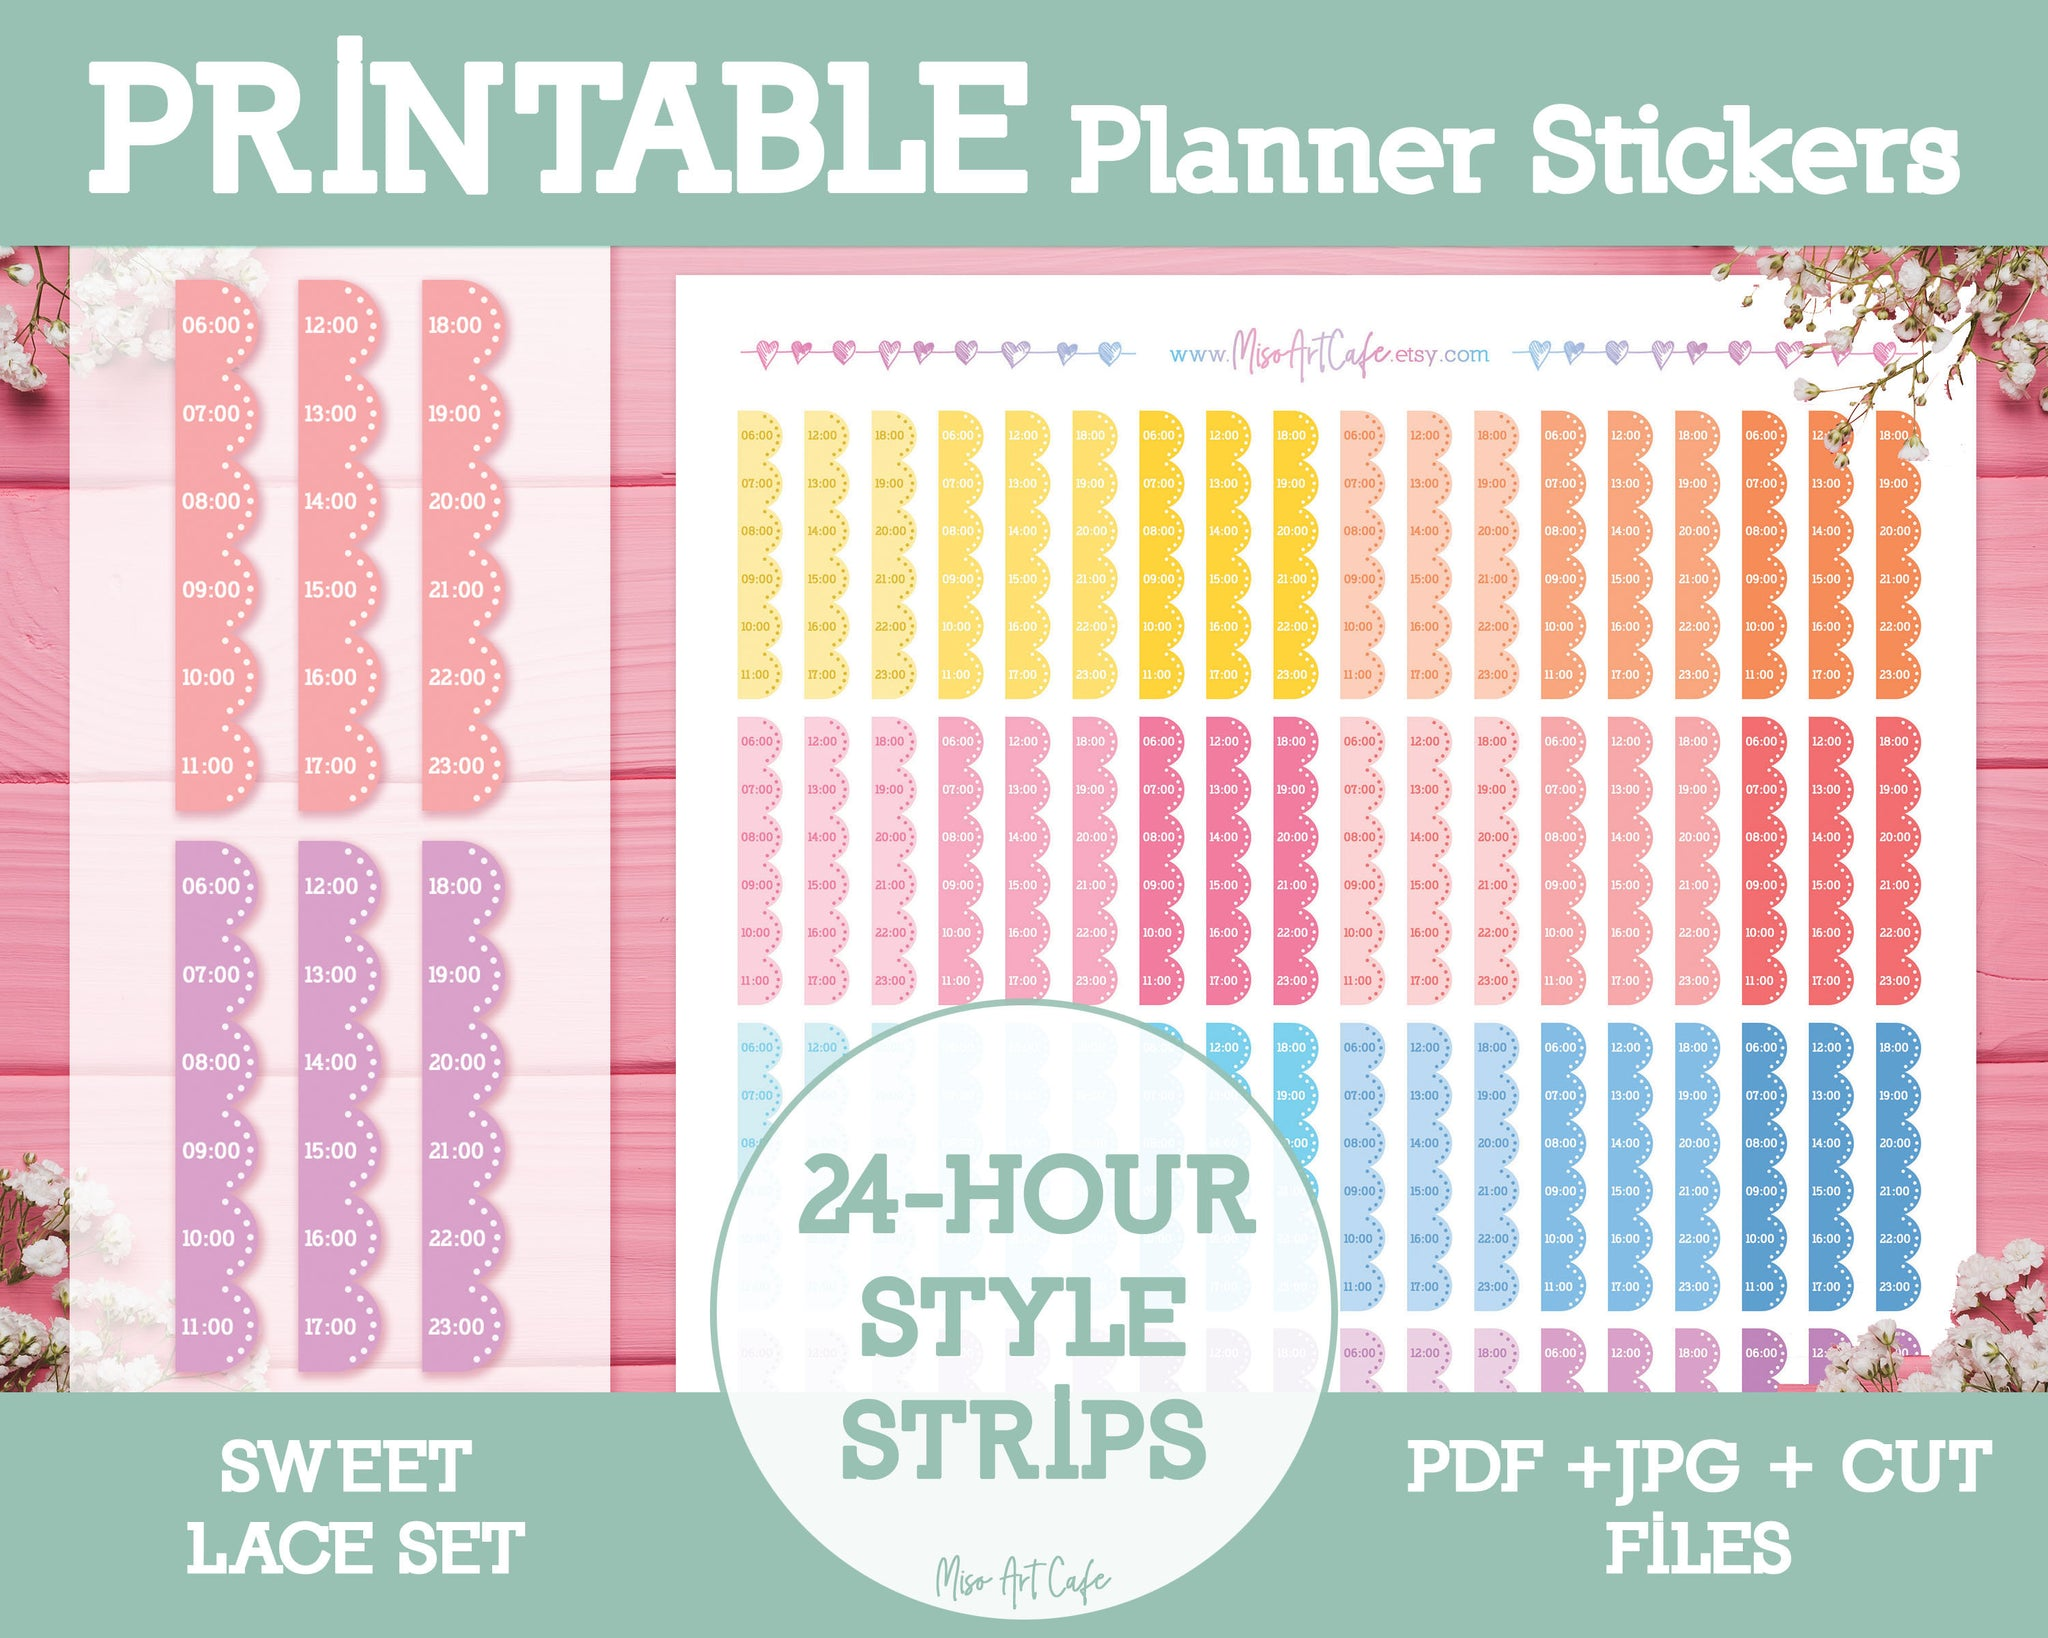 Printable Hourly Strips (24-Hour Format) - Sweet Lace Planner Stickers - Miso Art Cafe Stickers for Planners